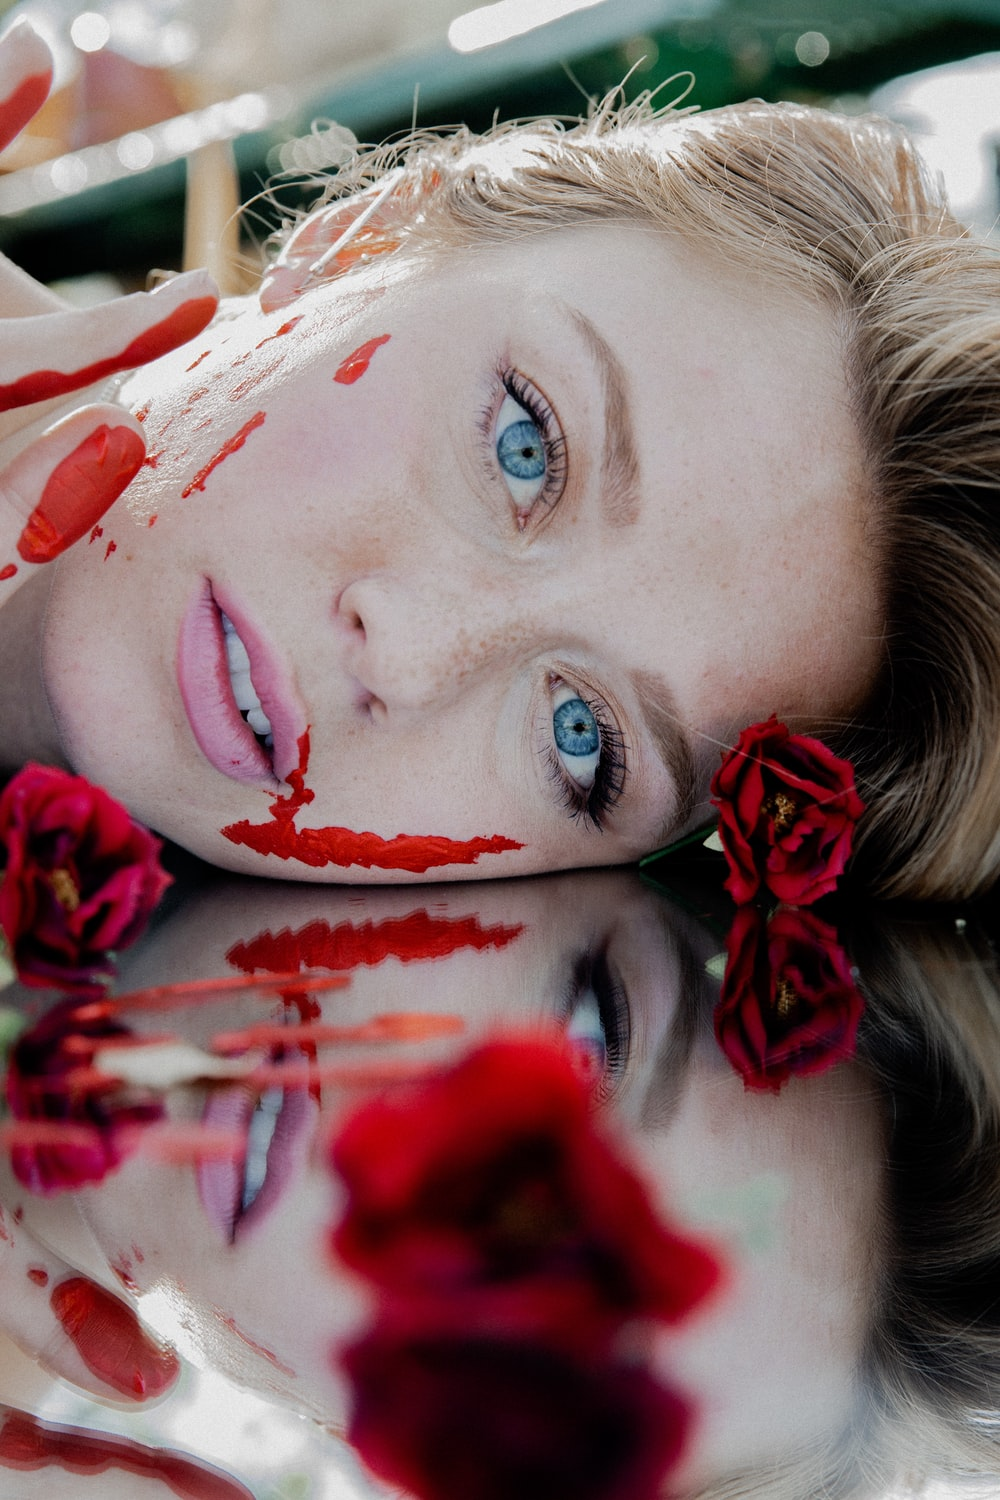 woman with red and white flower petals on her face